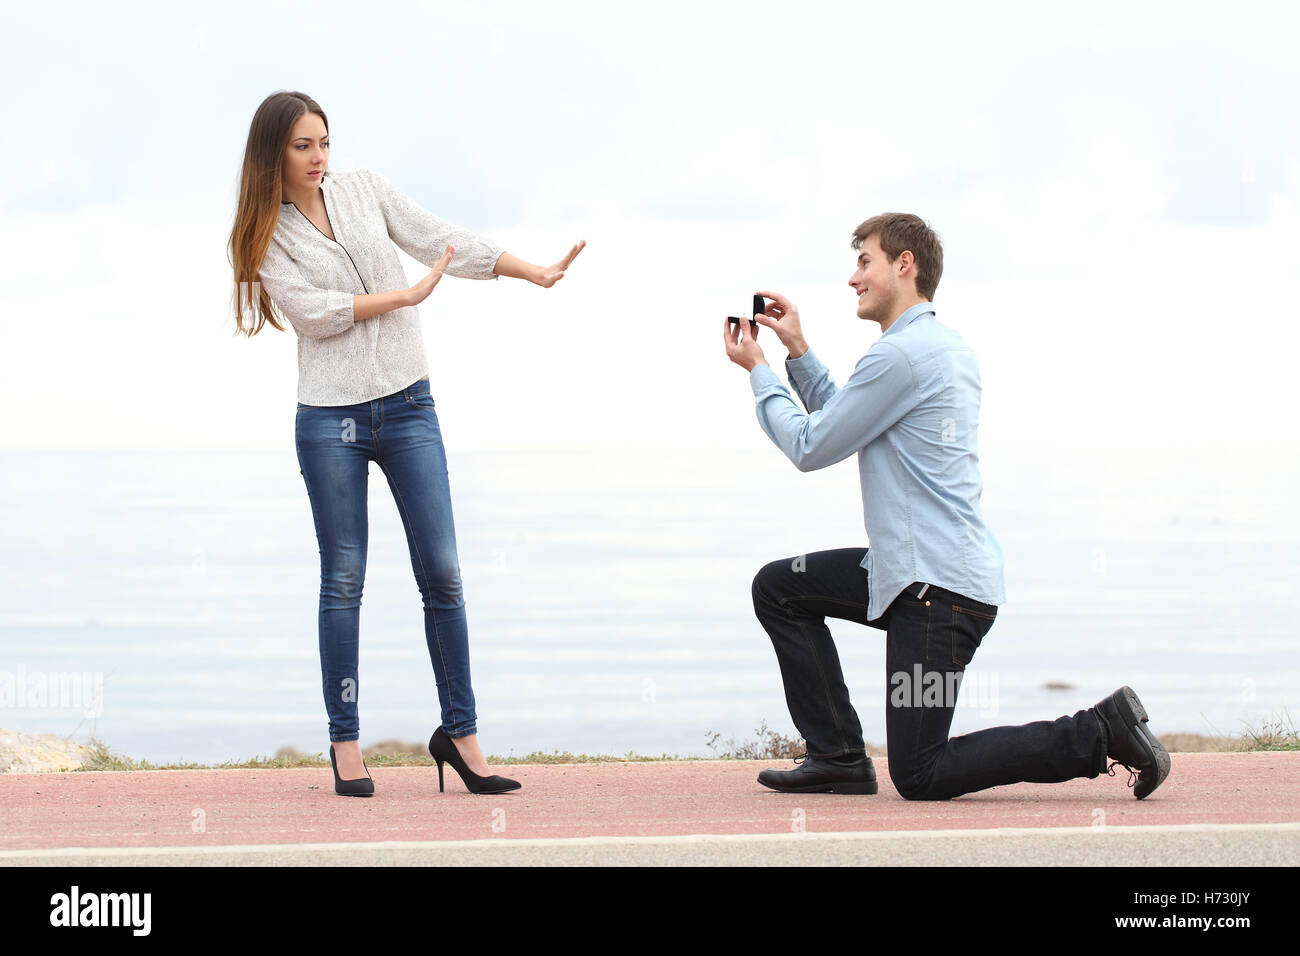 Proposal rejection when a man asks in marriage to a woman - Stock Image